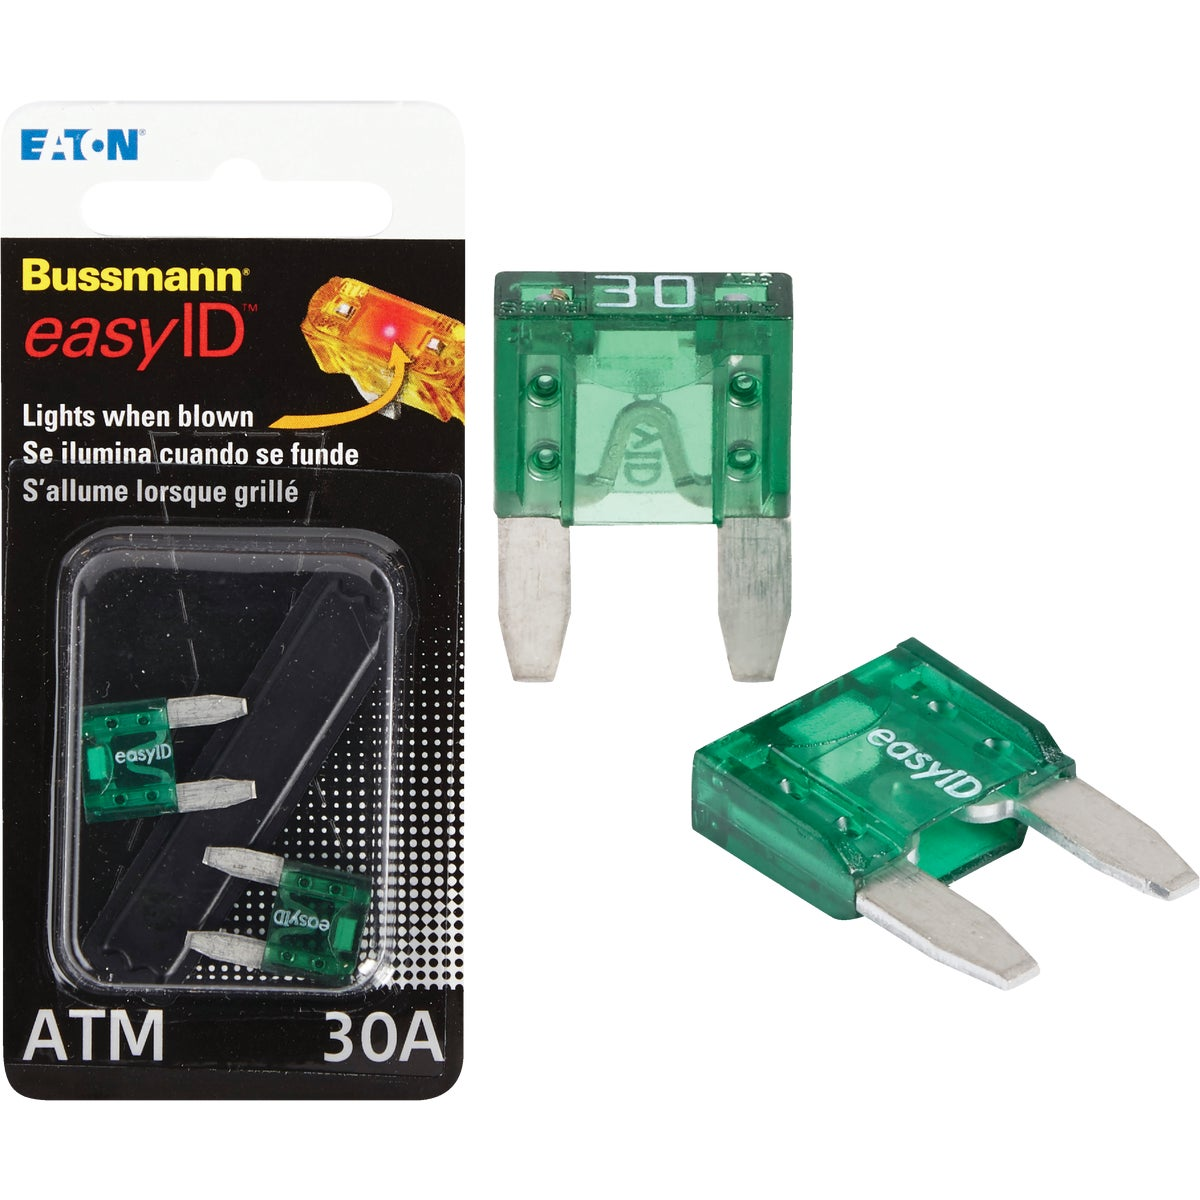 2PK 30A ATM EASY ID FUSE - BP/ATM-30ID by Bussmann Cooper